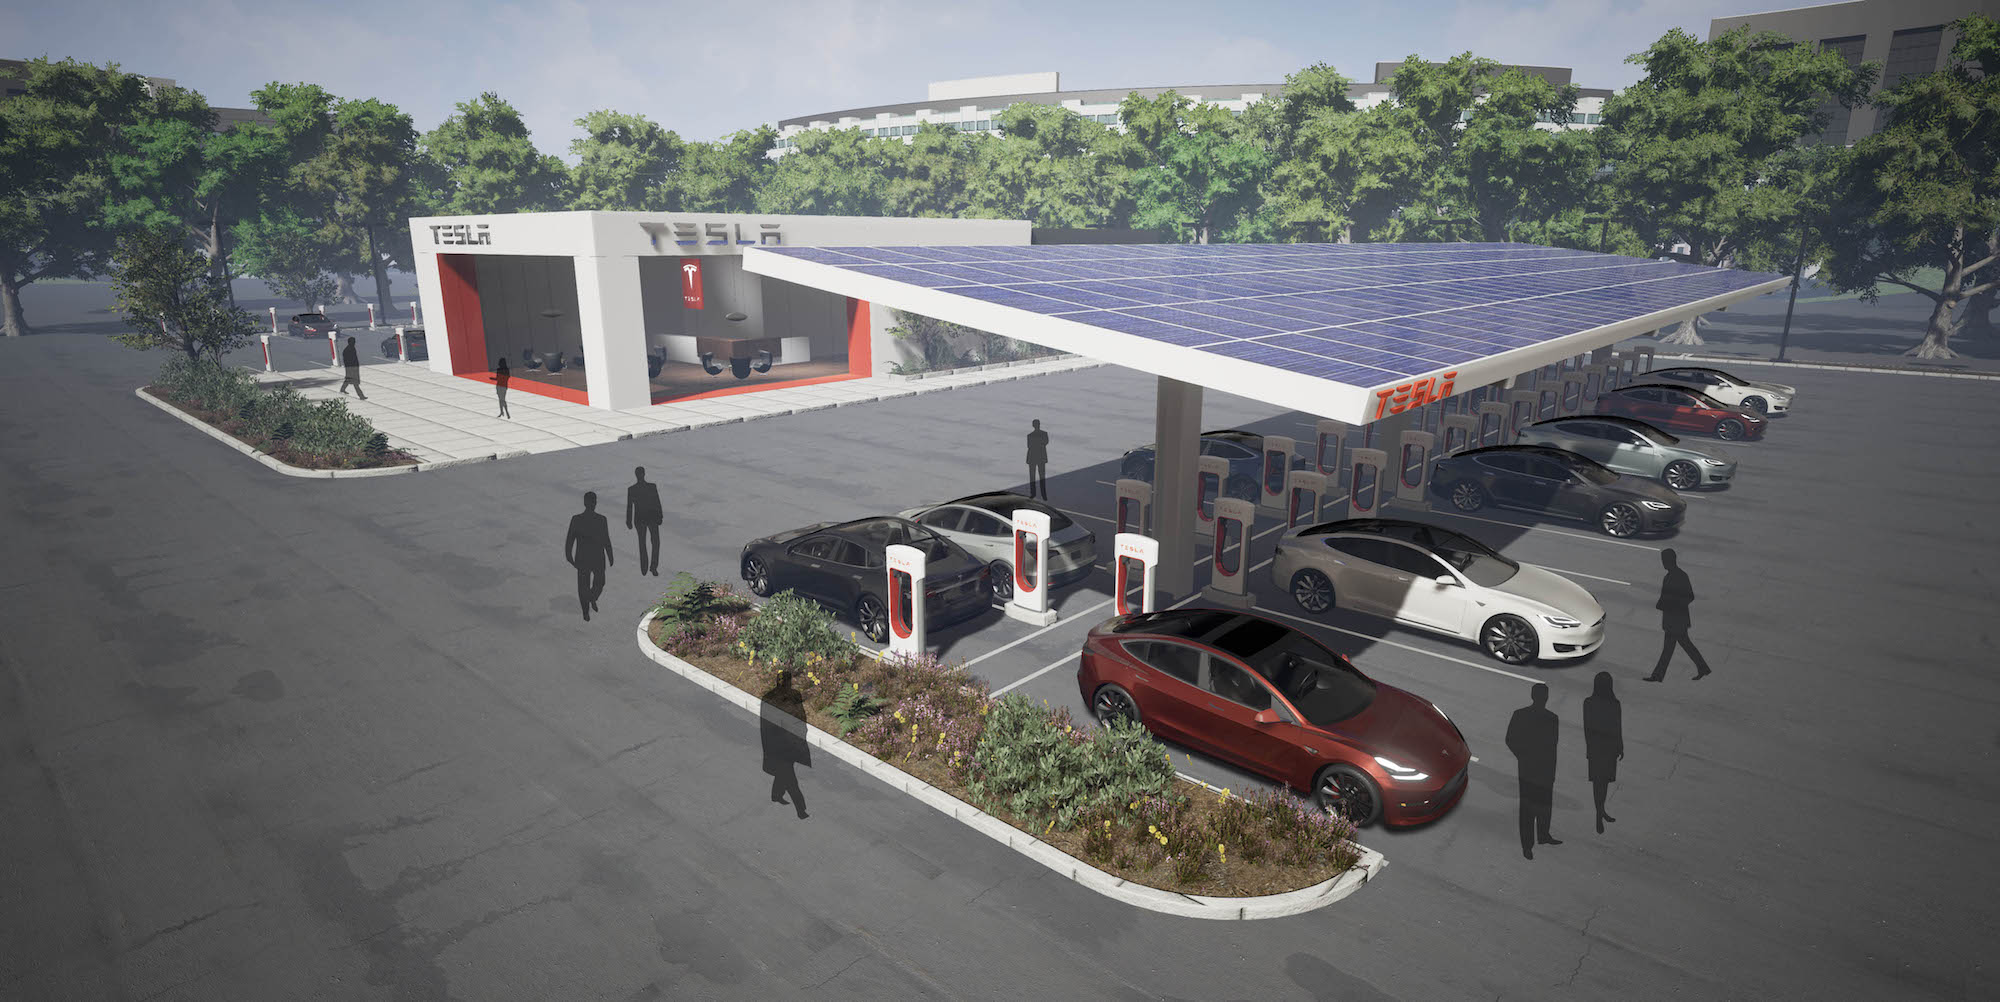 Tesla Doubles Supercharger Destination Charger Expansion besides Electric Car Charging Locations besides Nissan Leaf Charging Stations Map also Tesla Expands Supercharger  work Uk as well Tesla Teams Hy Vee Superchargers Installed Midwest. on tesla supercharger locations